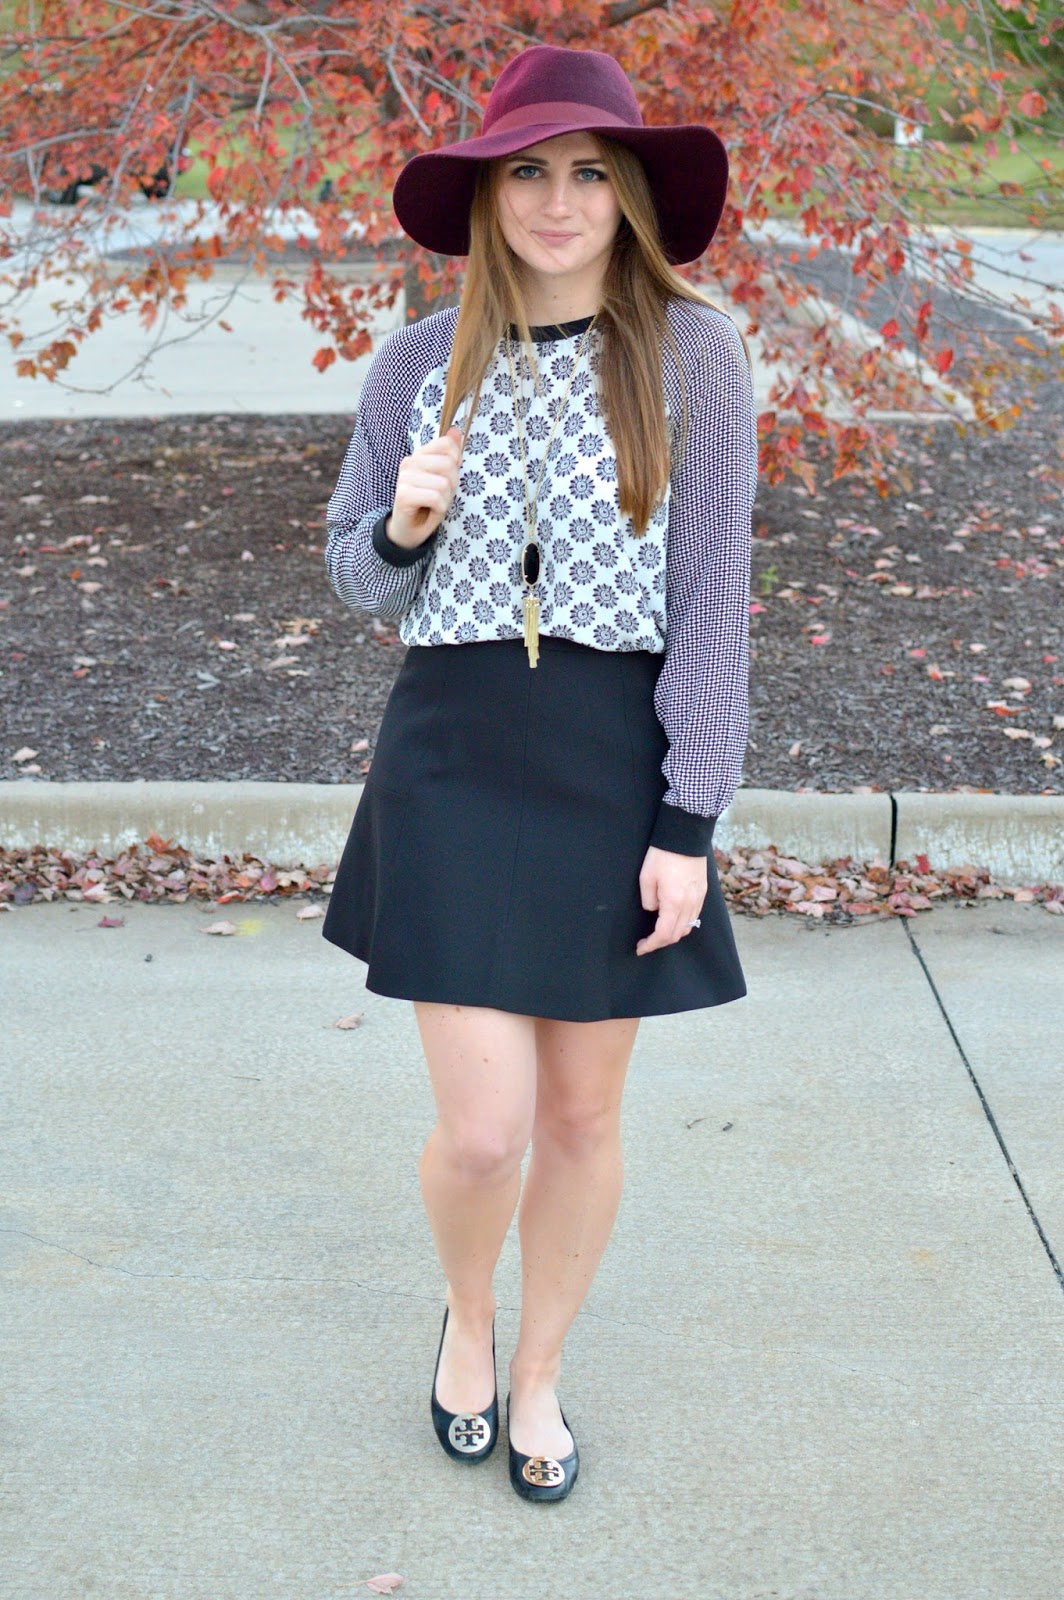 printed black and white top with a black skirt